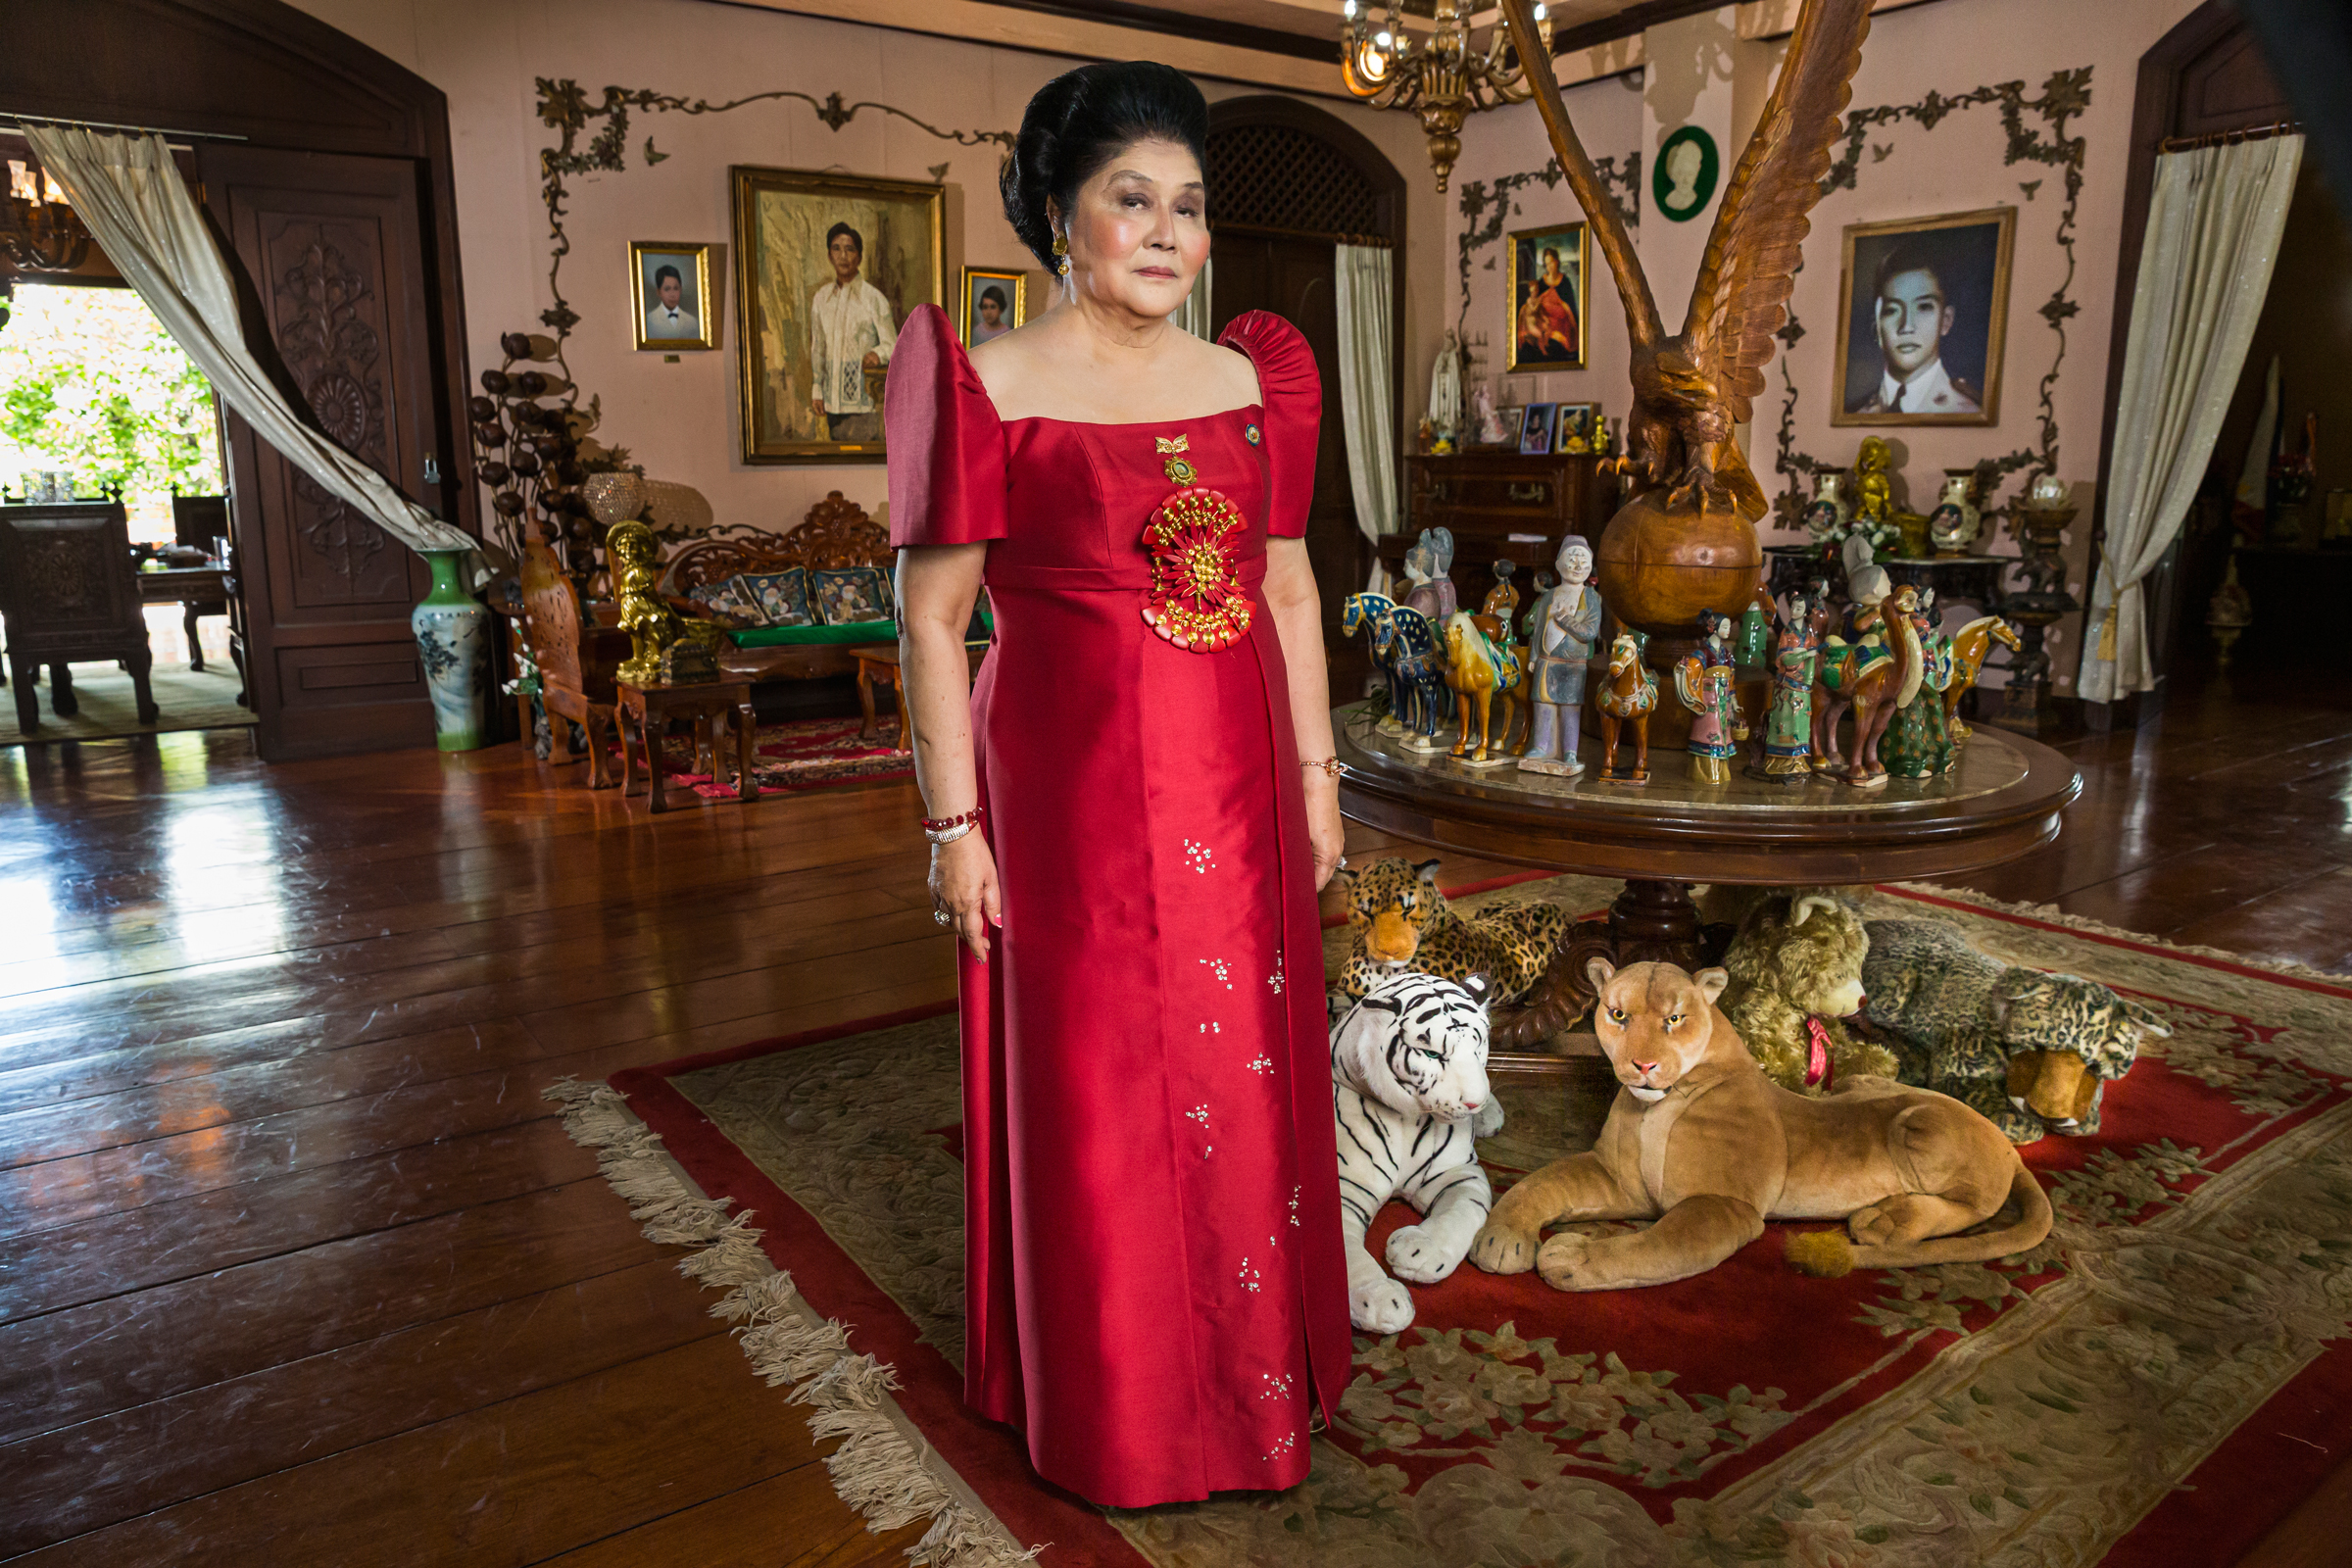 Imelda Marcos wearing a formal gown and standing inside her residence.